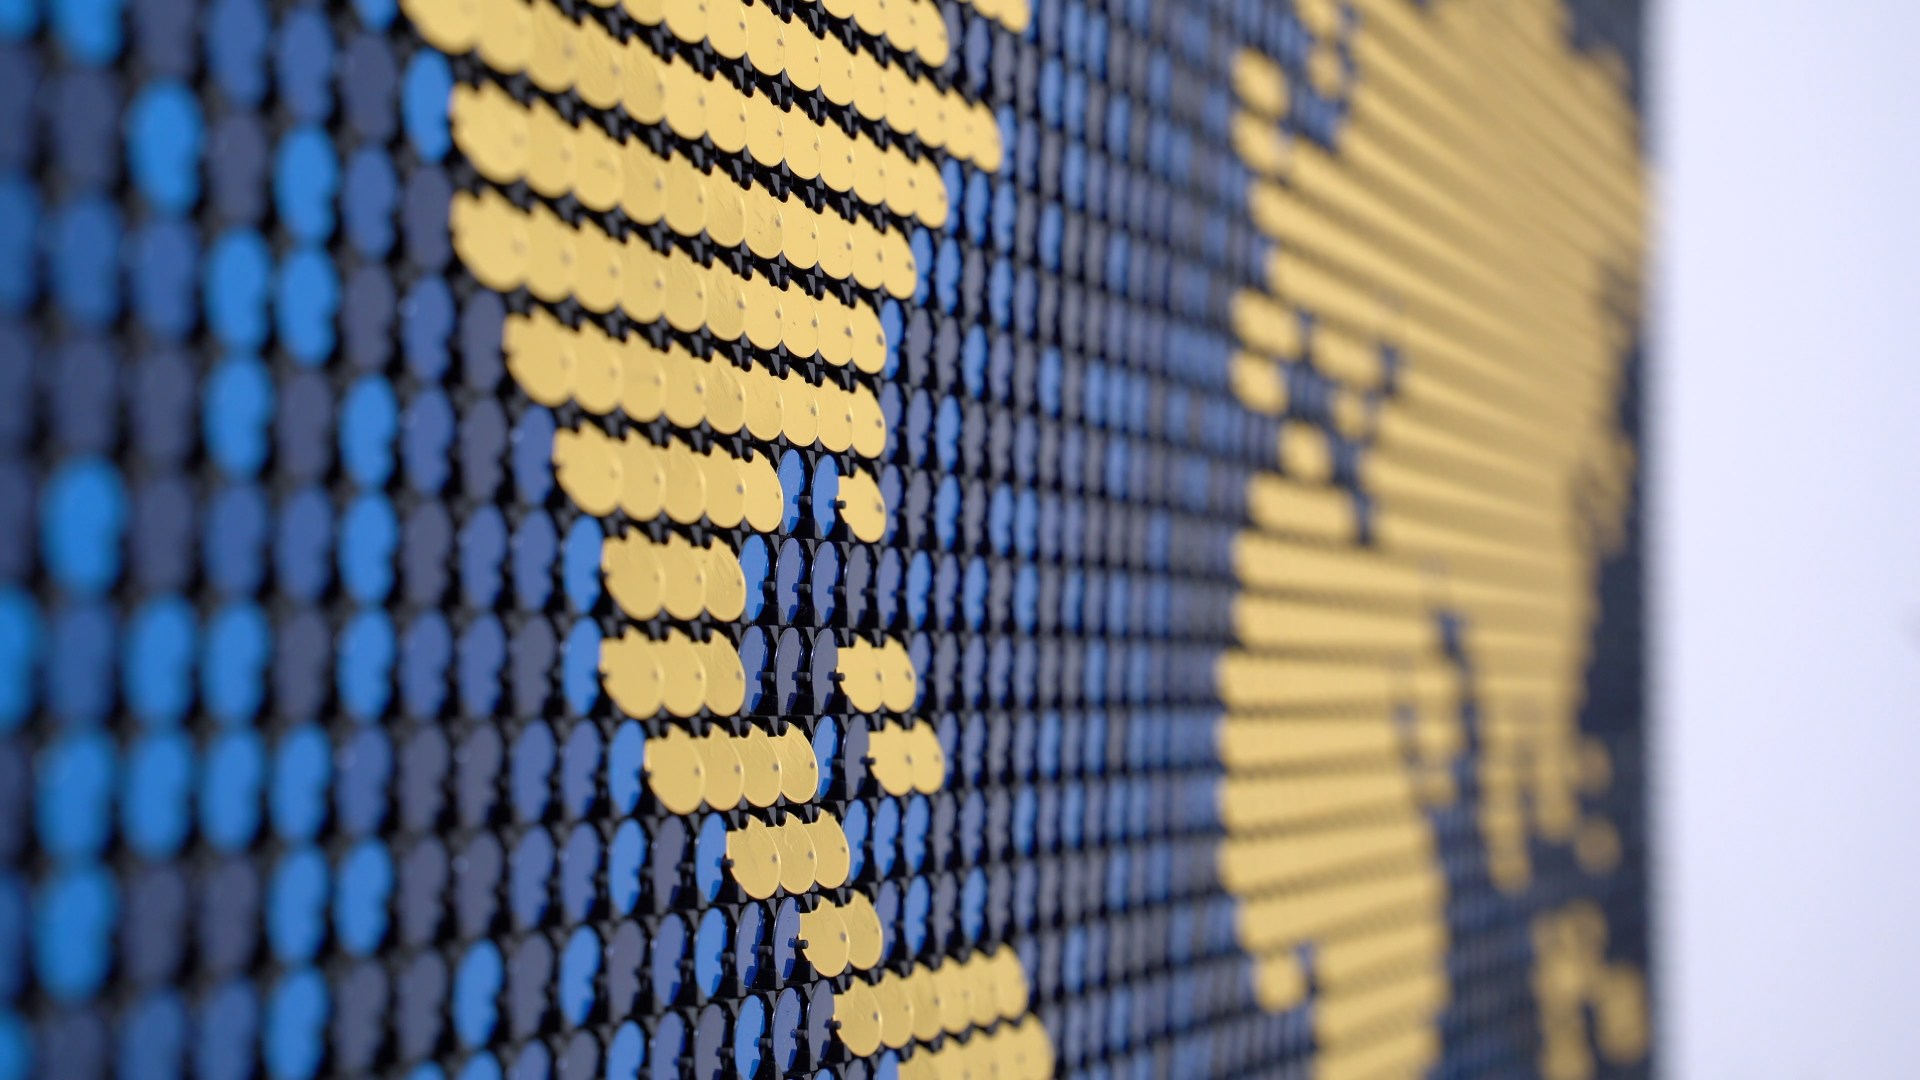 Close up of blue and gold Flip-Discs artwork called Seismic Echo, showing a map with real-time seismic activity overlaid. Created by BREAKFAST.